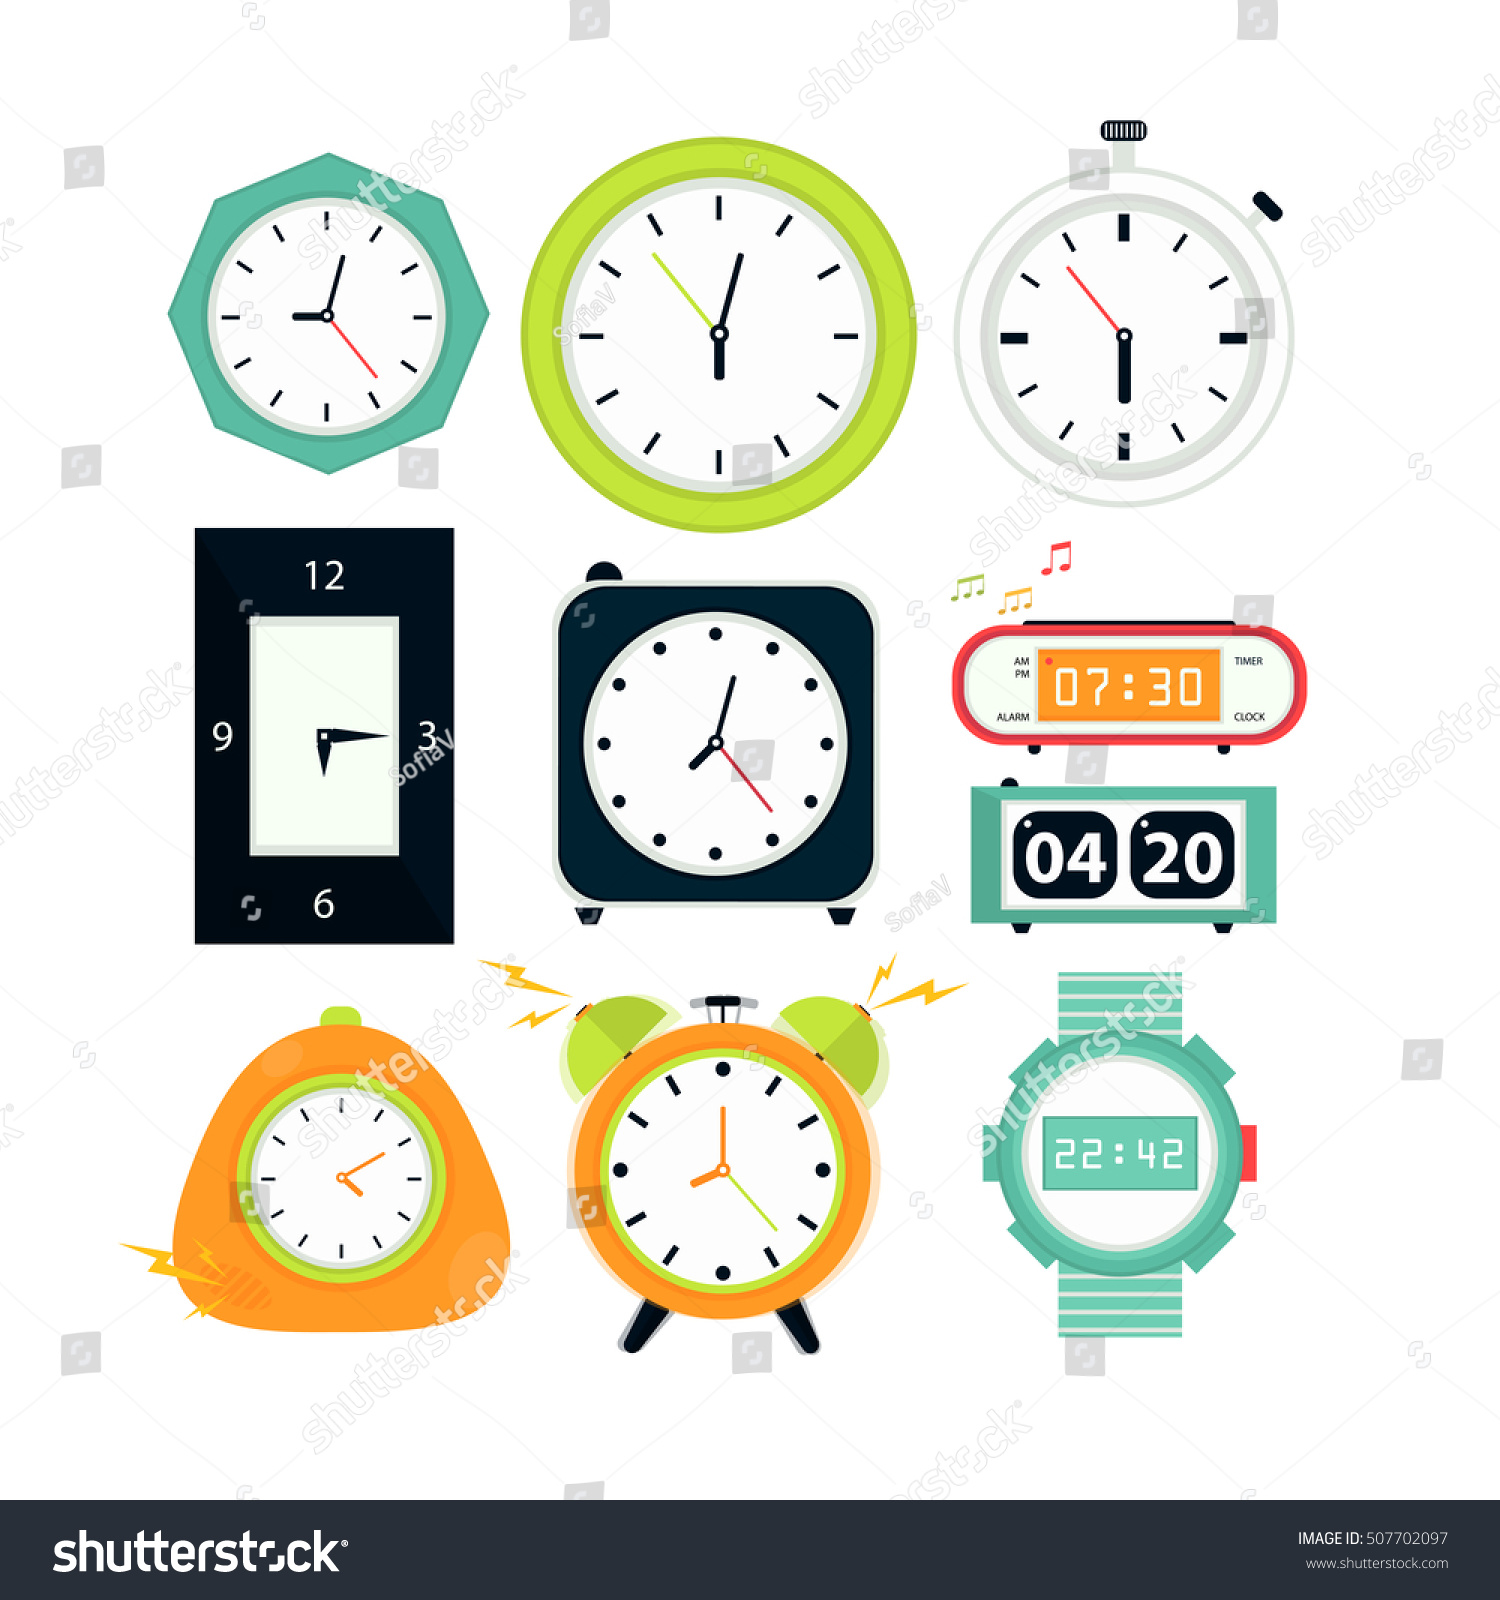 Types alarms clocks digital watch timer stock vector 507702097 types of alarms clocks digital watch and timer stopwatch and hourglass symbol of amipublicfo Choice Image